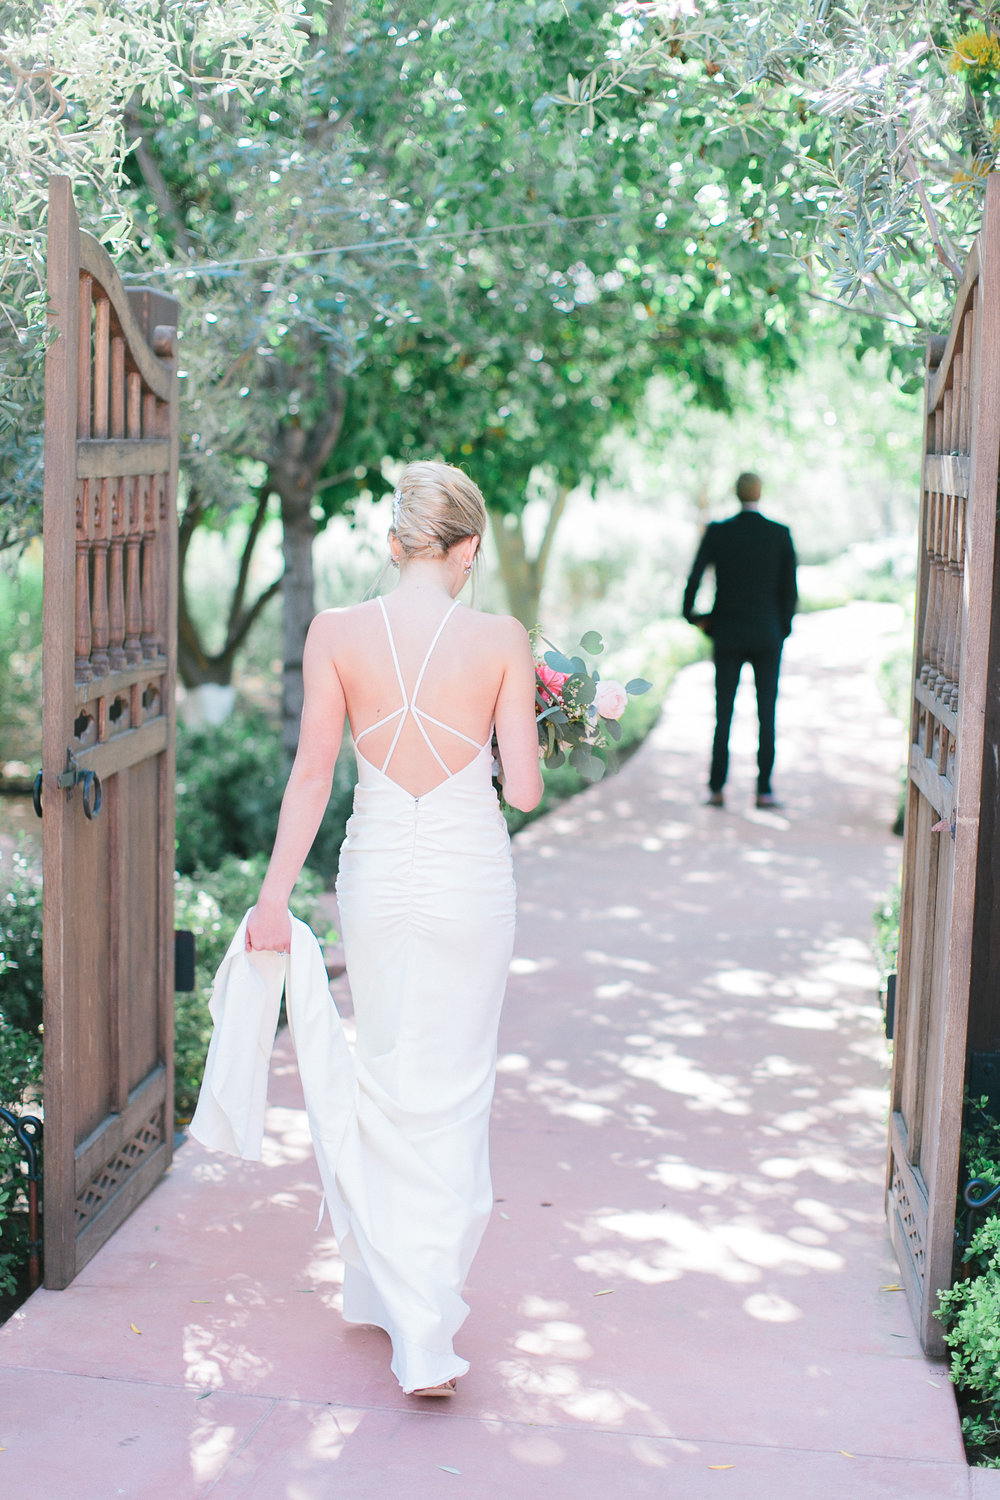 el chorro wedding scottsdale wedding planner arizona bride groom dress